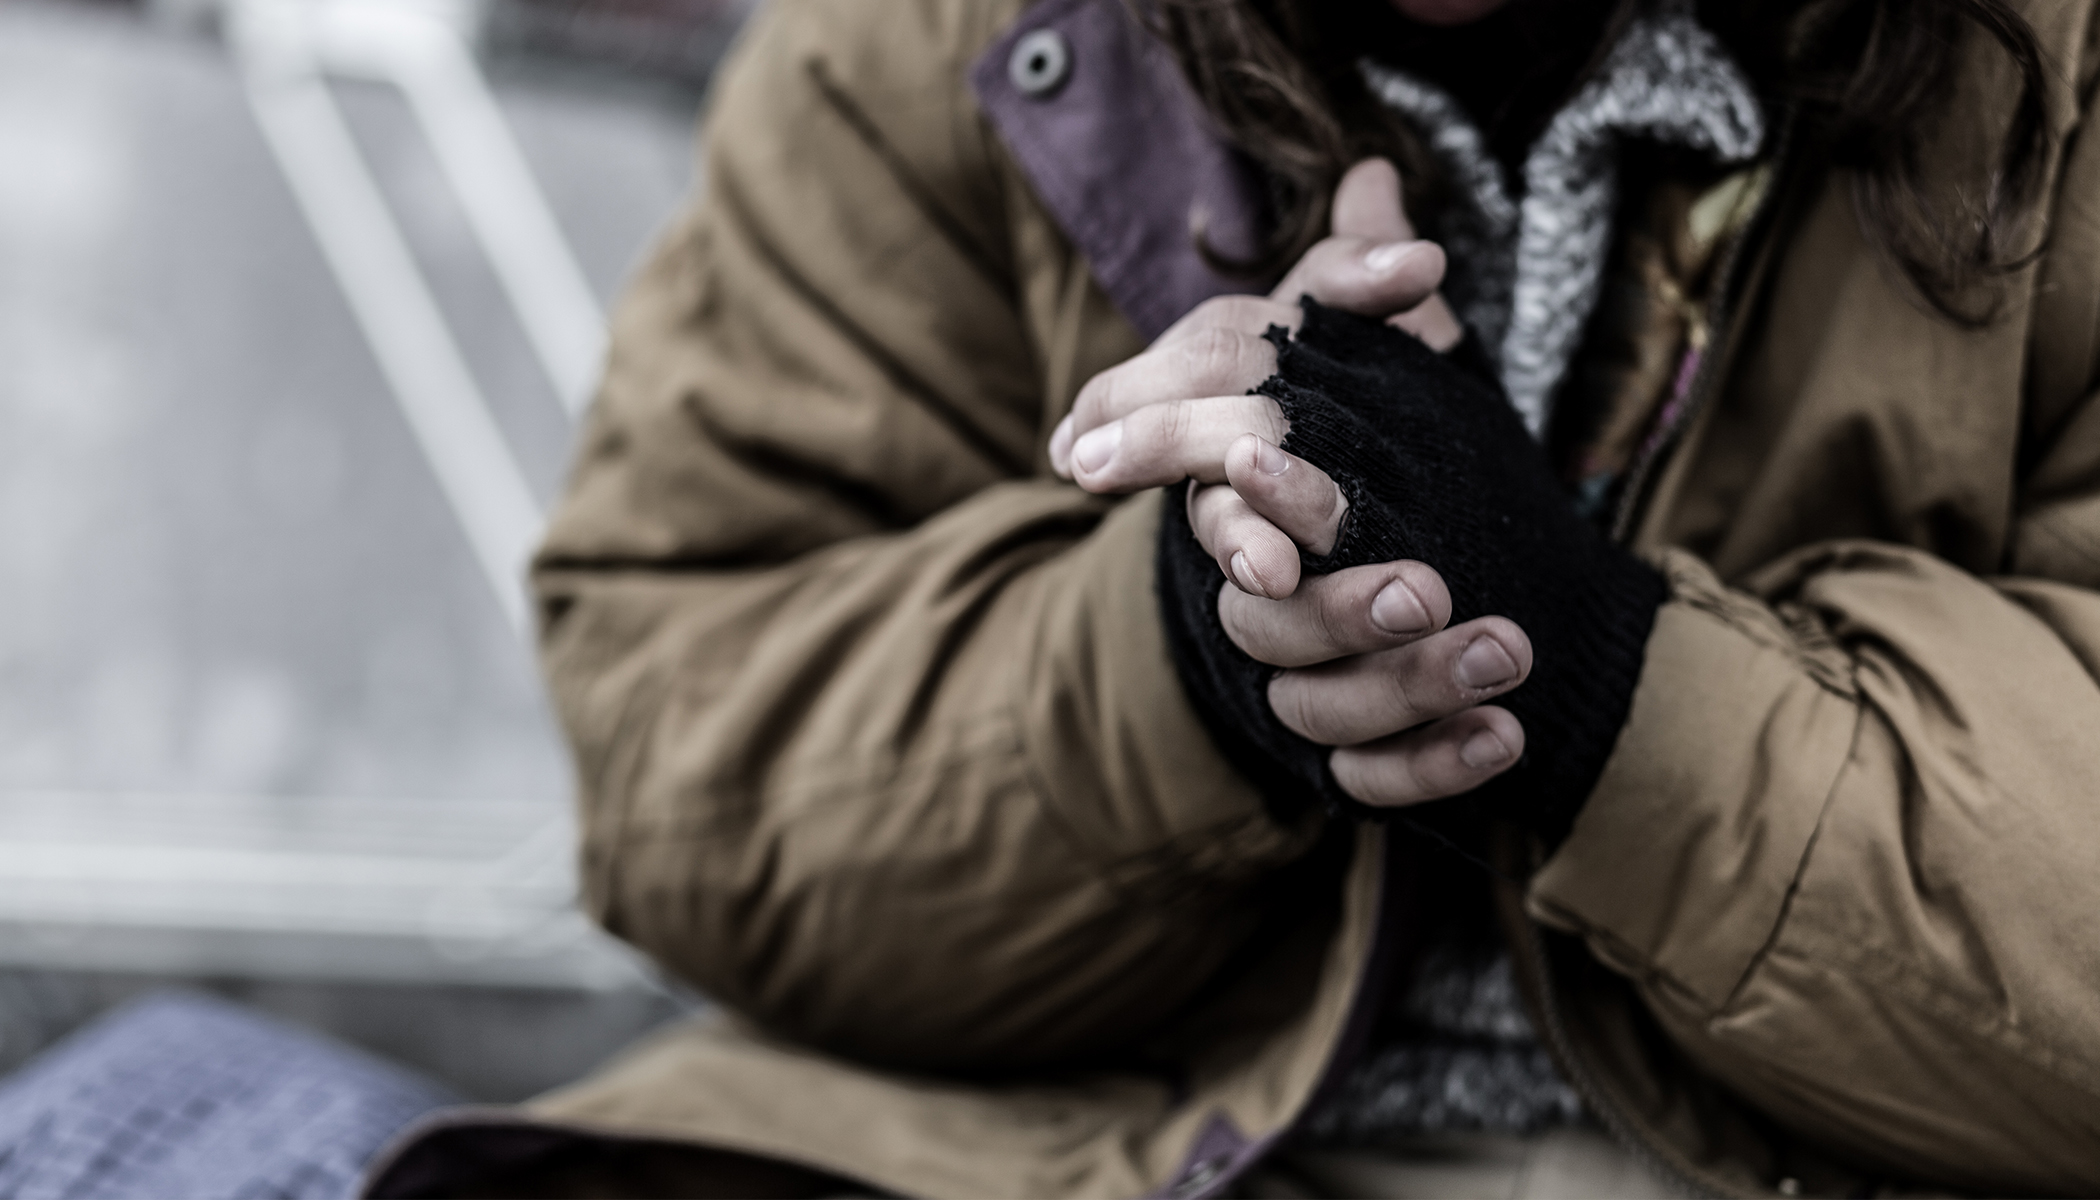 Homeless Man Gives Up Coat for Freezing Woman, What Happens 5 Days Later Changes His Life